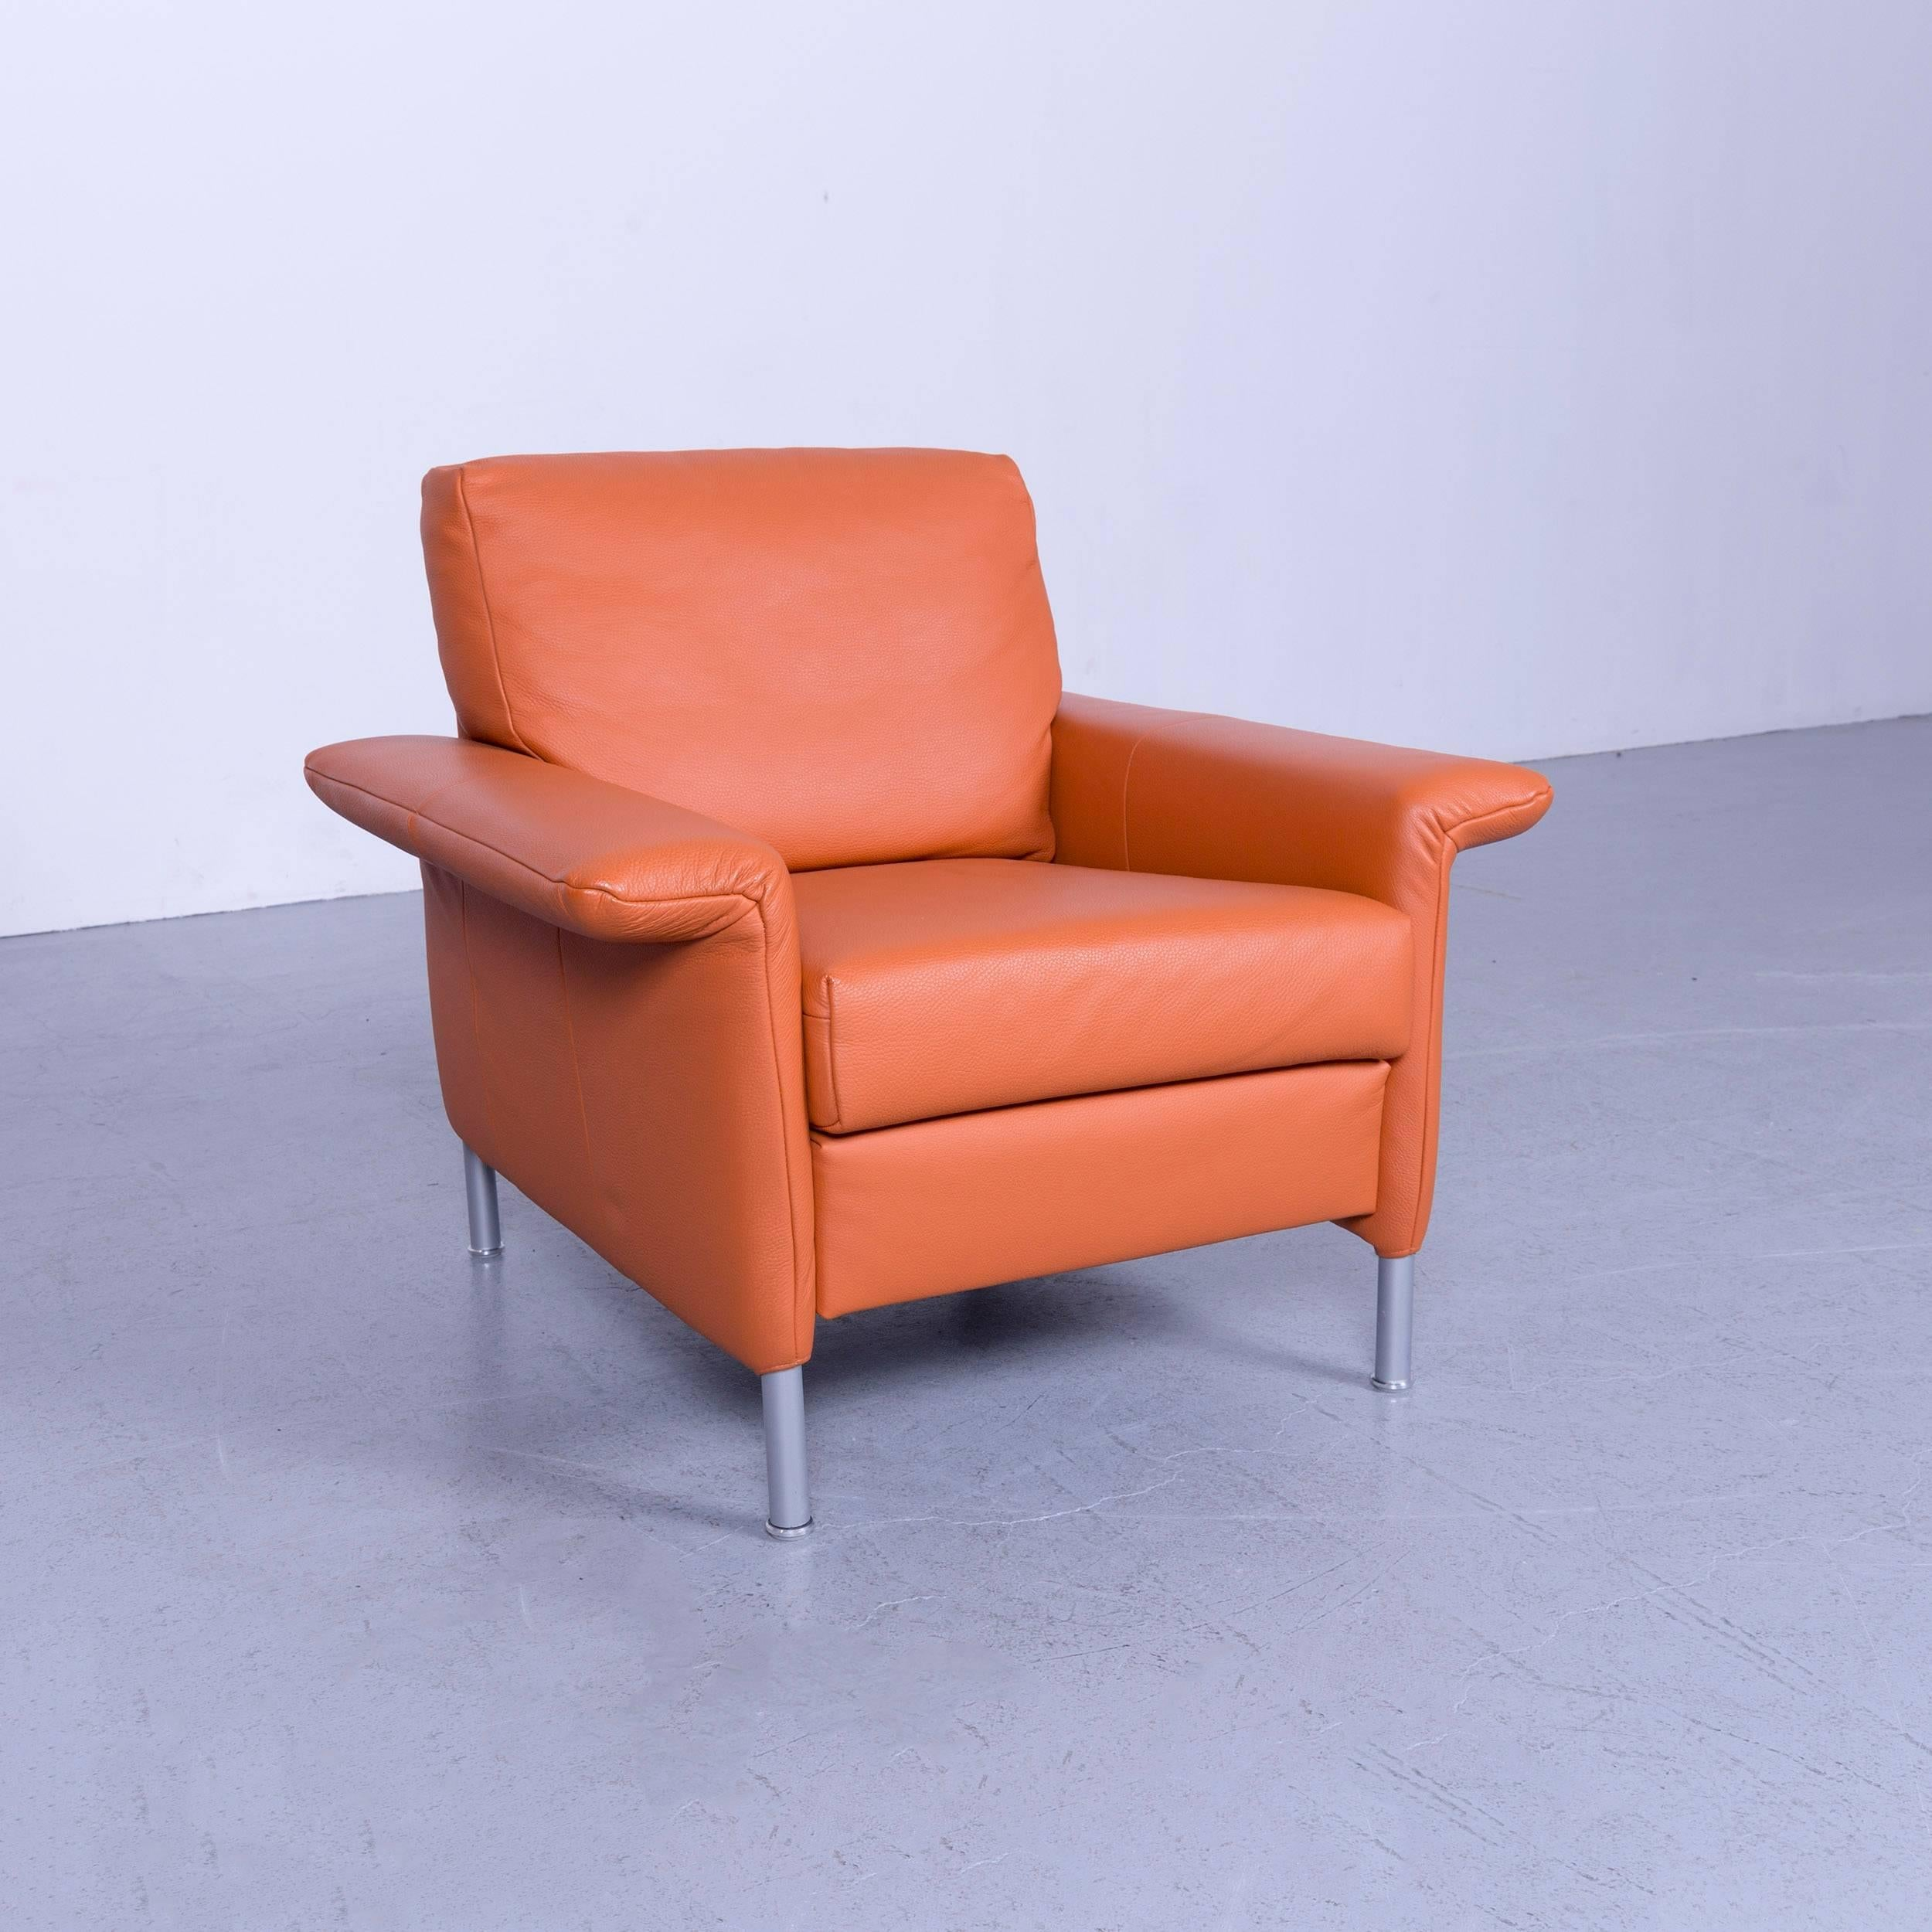 Designer Sessel Orange Sessel Orange